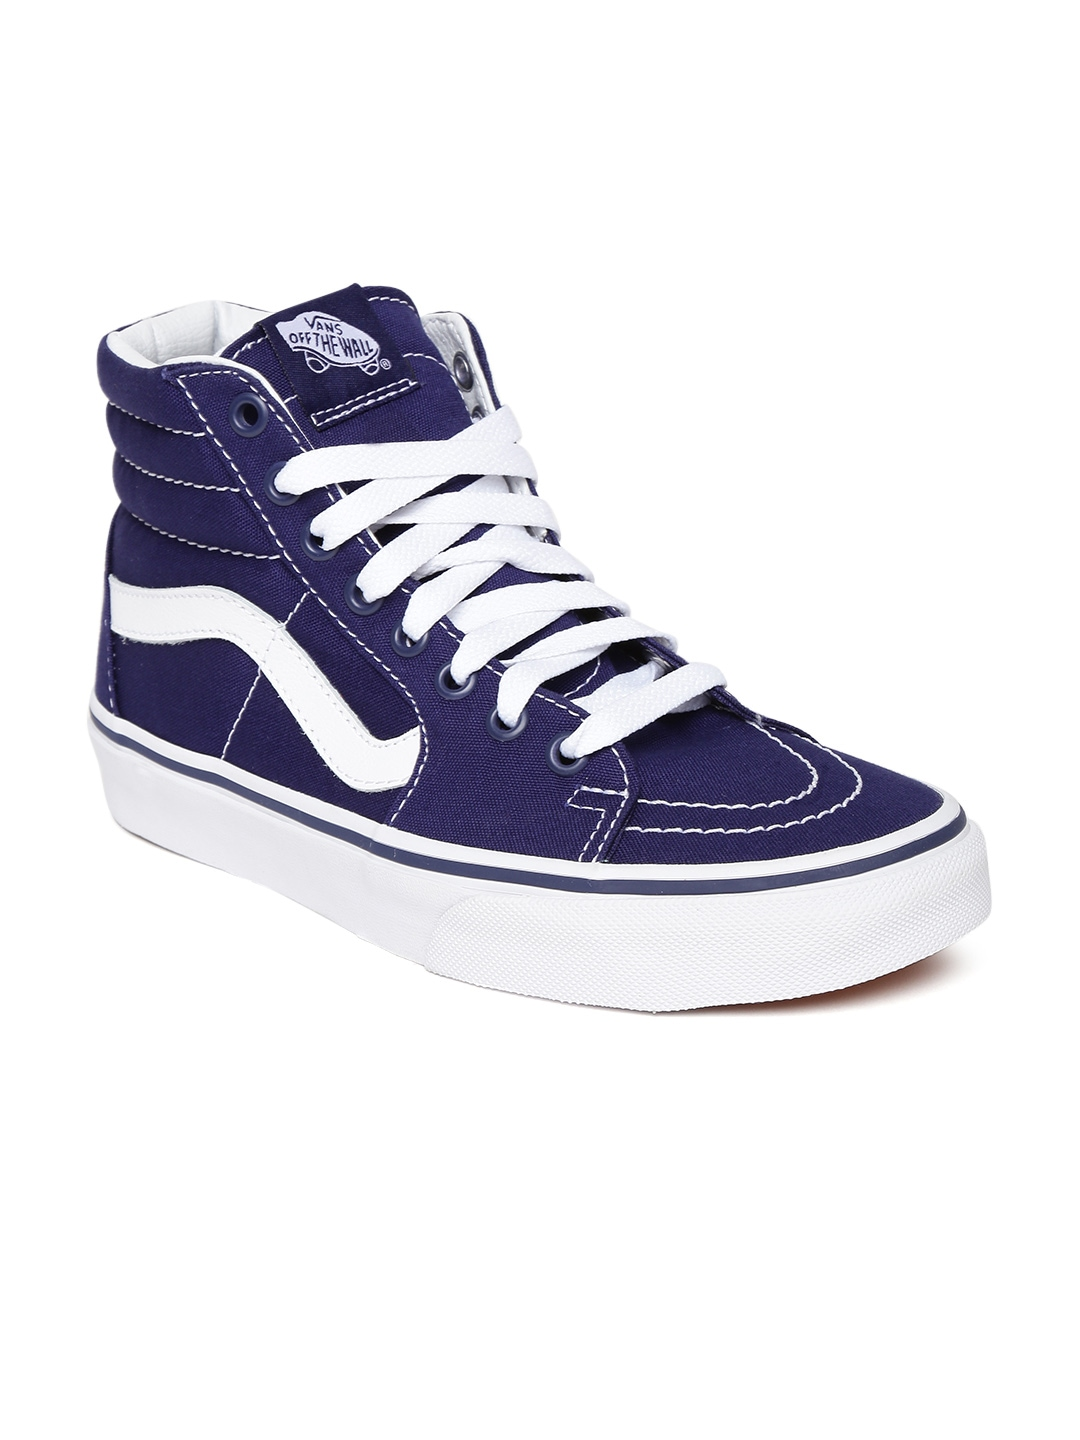 Myntra Vans Casual Shoes